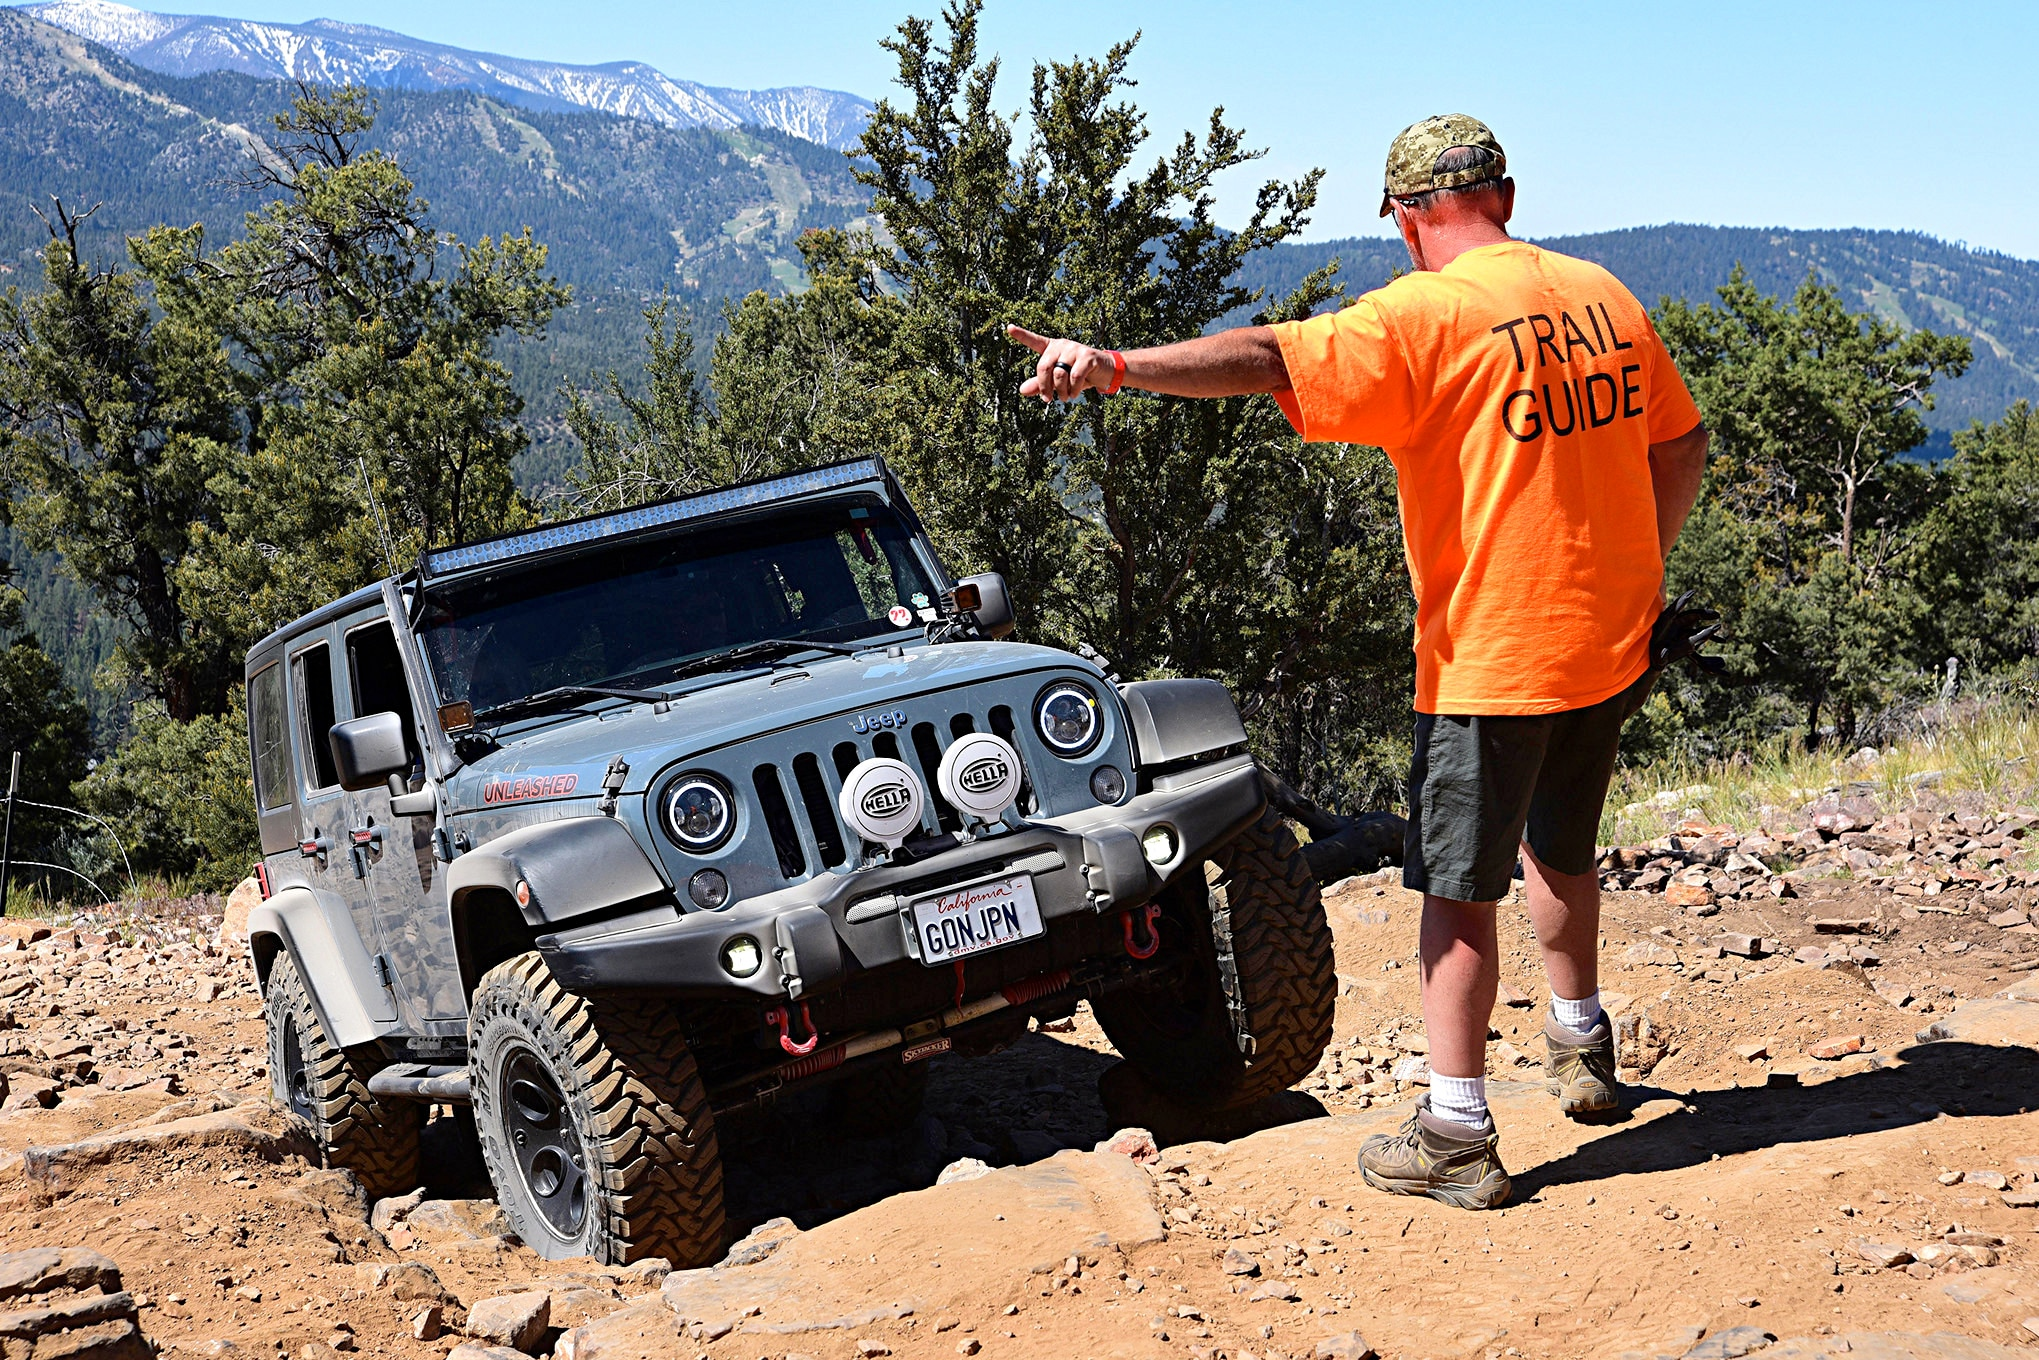 029 jeep event big bear forest fest 2019 inland empire